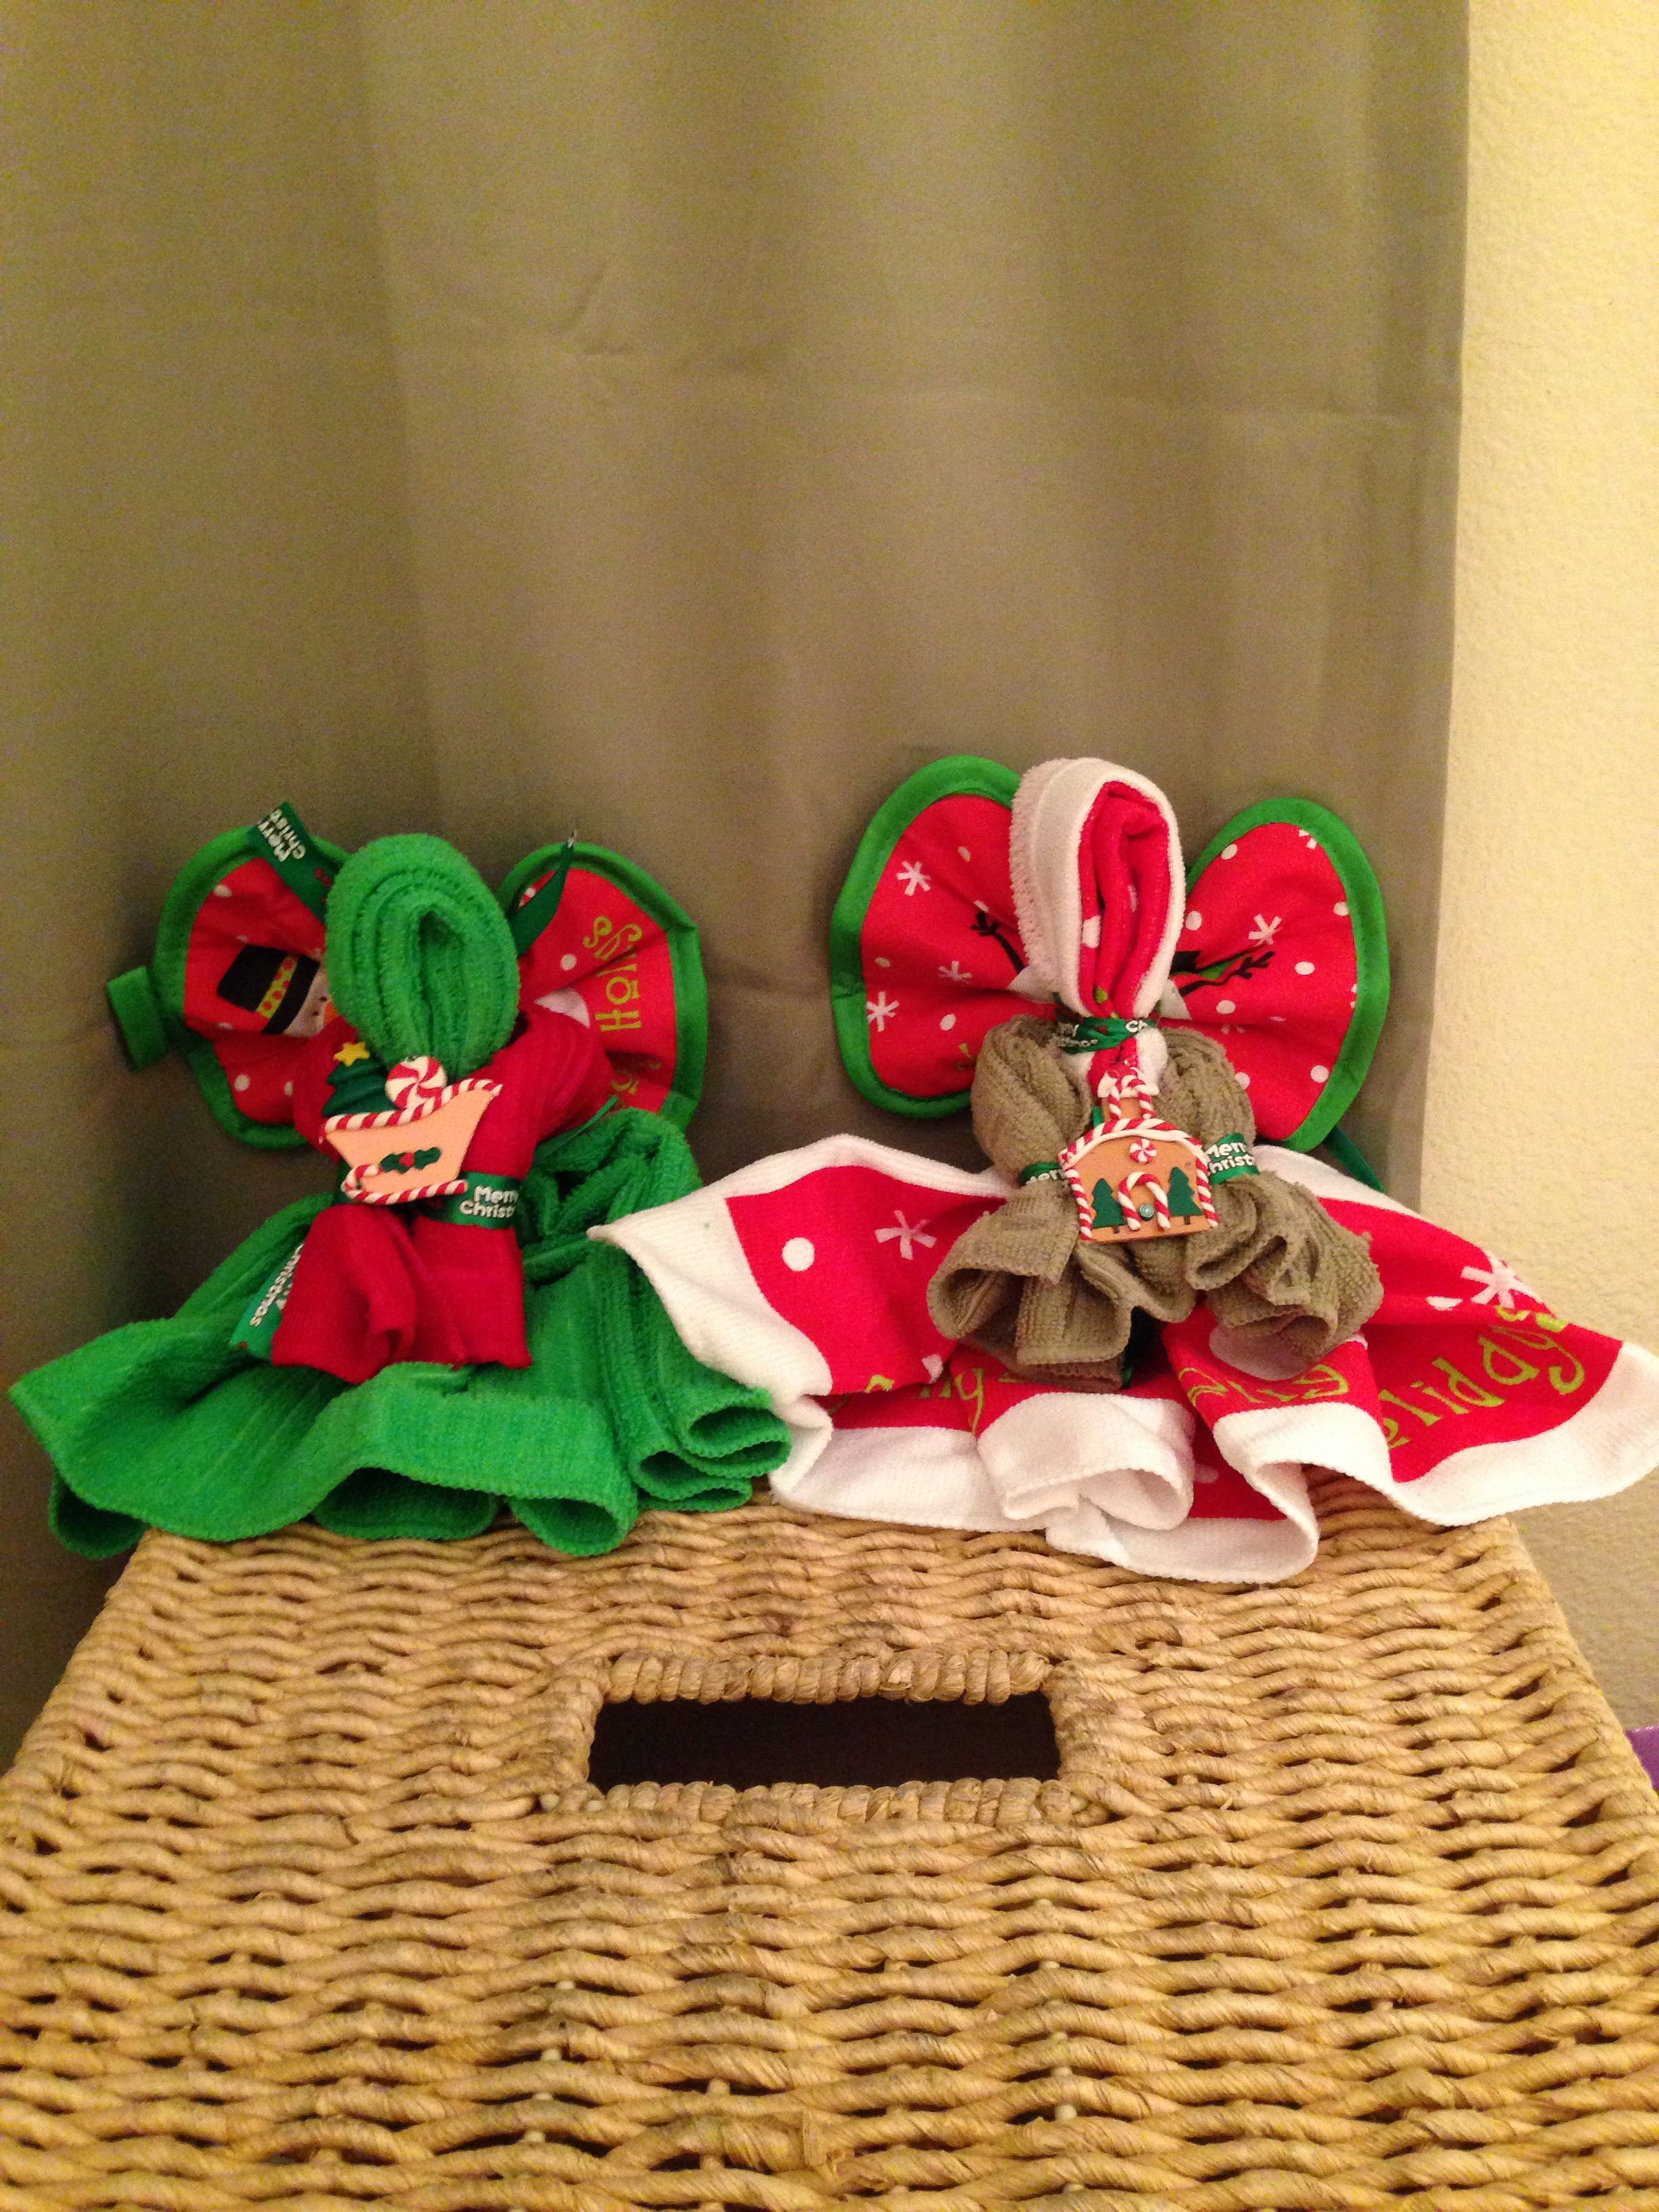 Dollar tree Xmas dish towel angels | Xmas homemade gifts ... - photo#49